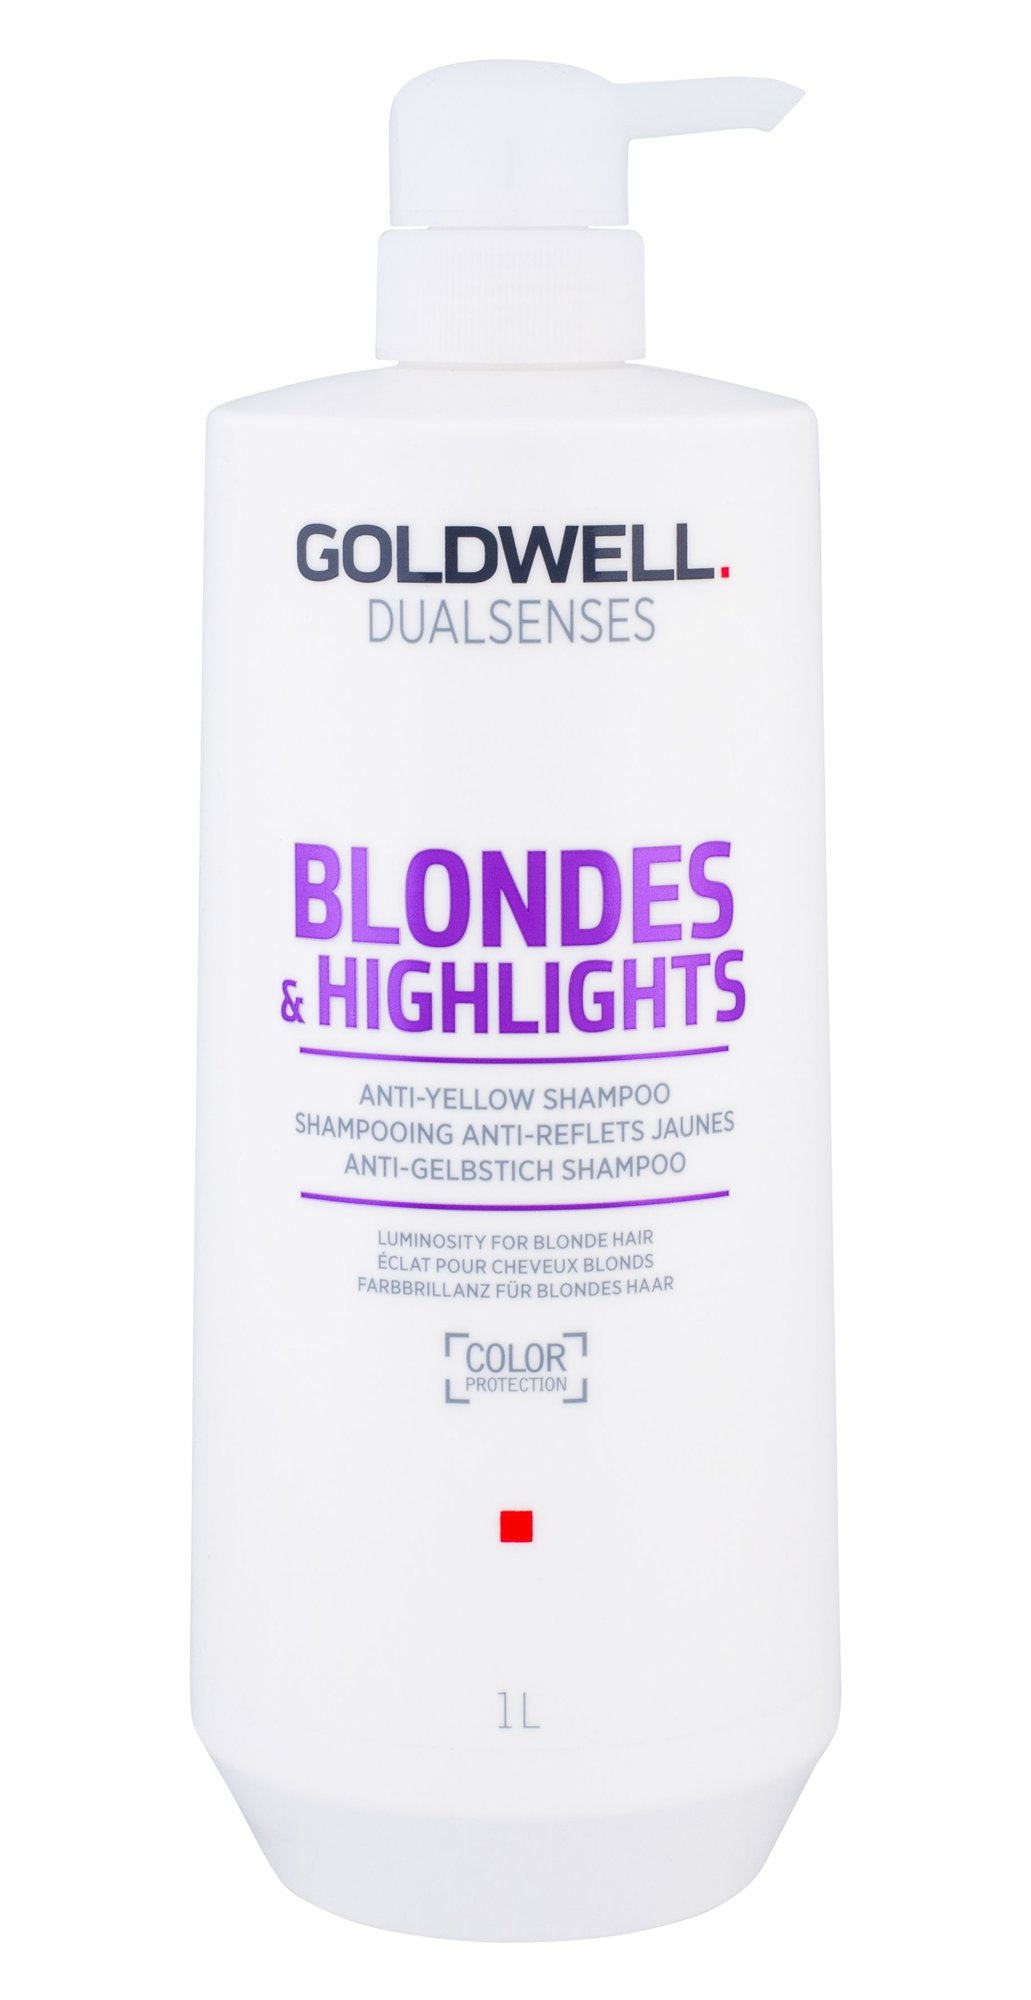 Goldwell Dualsenses Blondes Highlights Cosmetic 1000ml